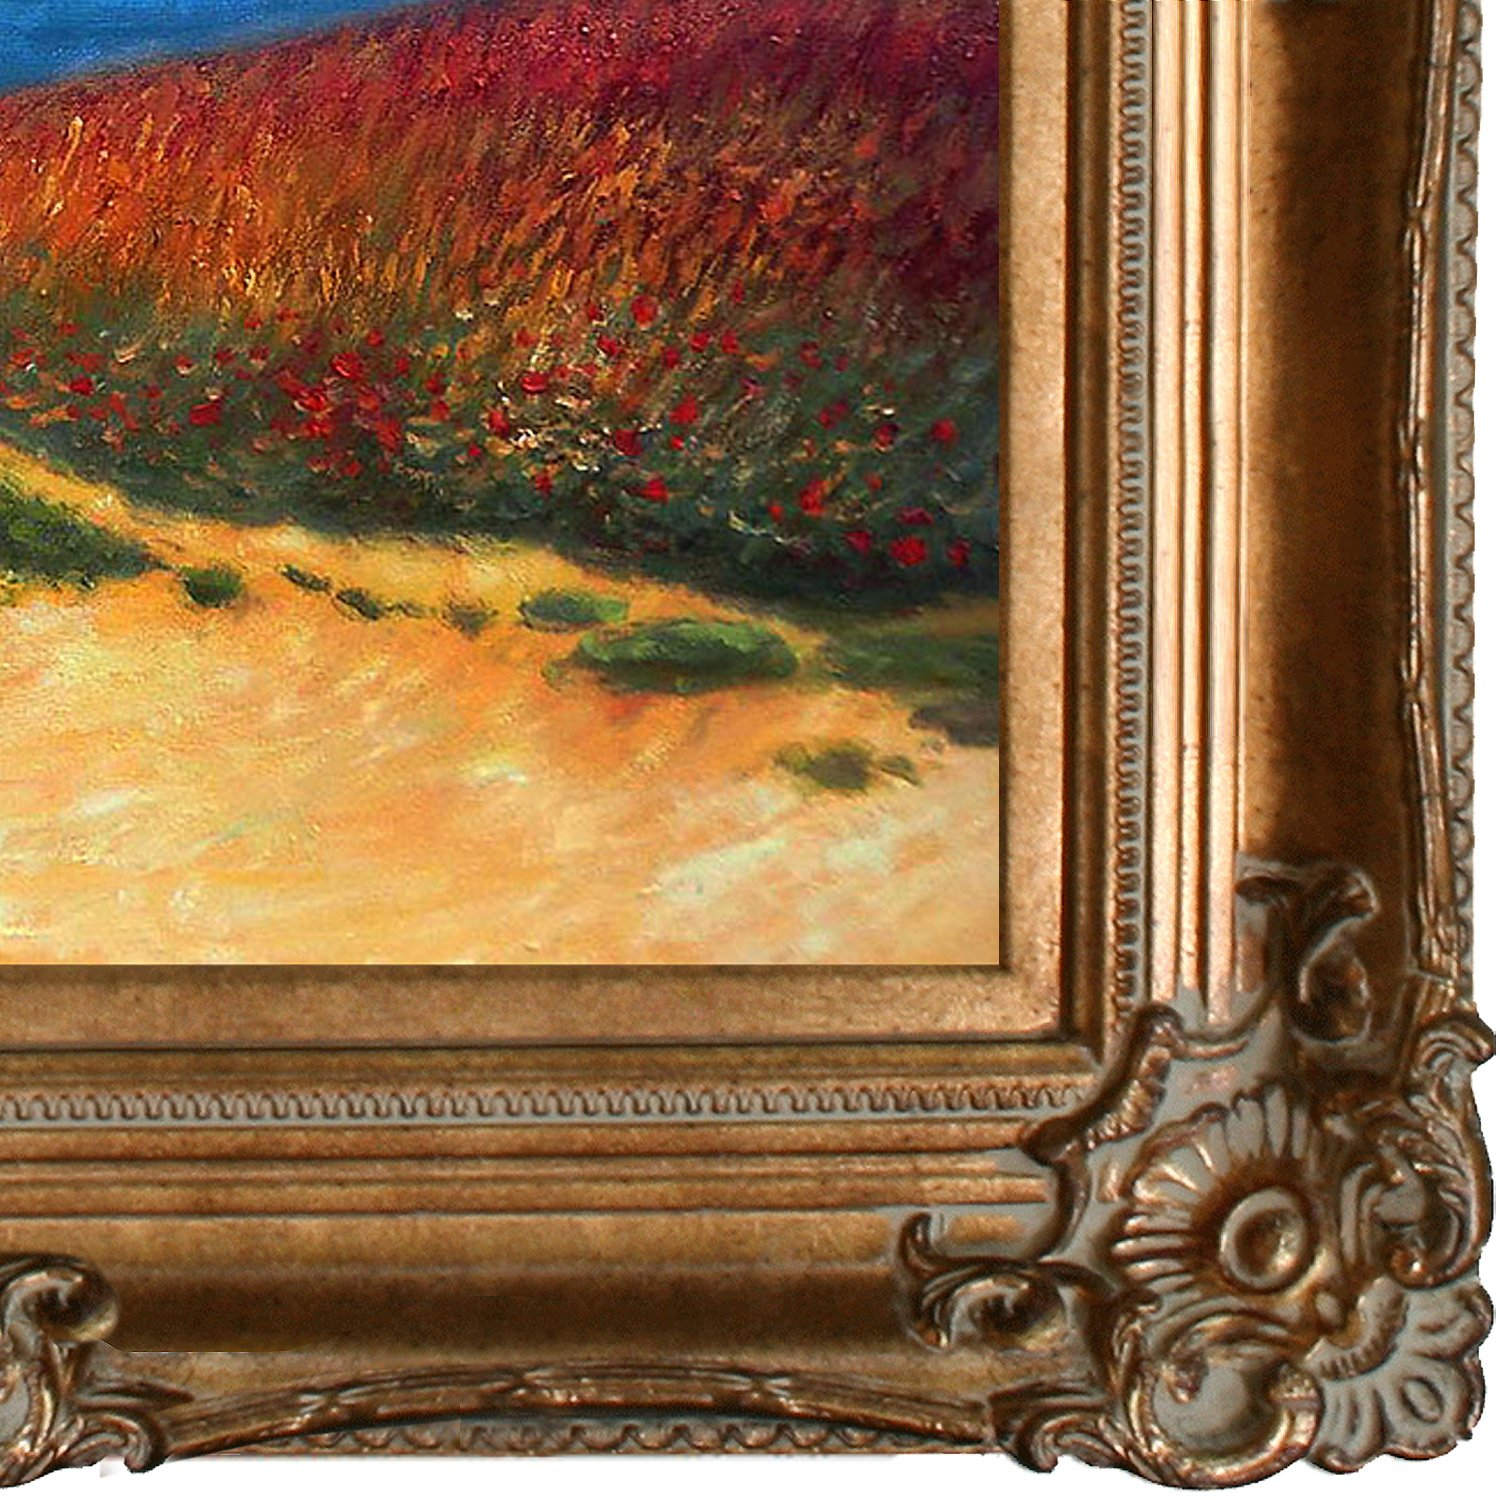 overstockArt Meadow Road to Pourville 1882 Artwork by Monet with Renaissance Bronze Frame MON1471-FR-801G20X24